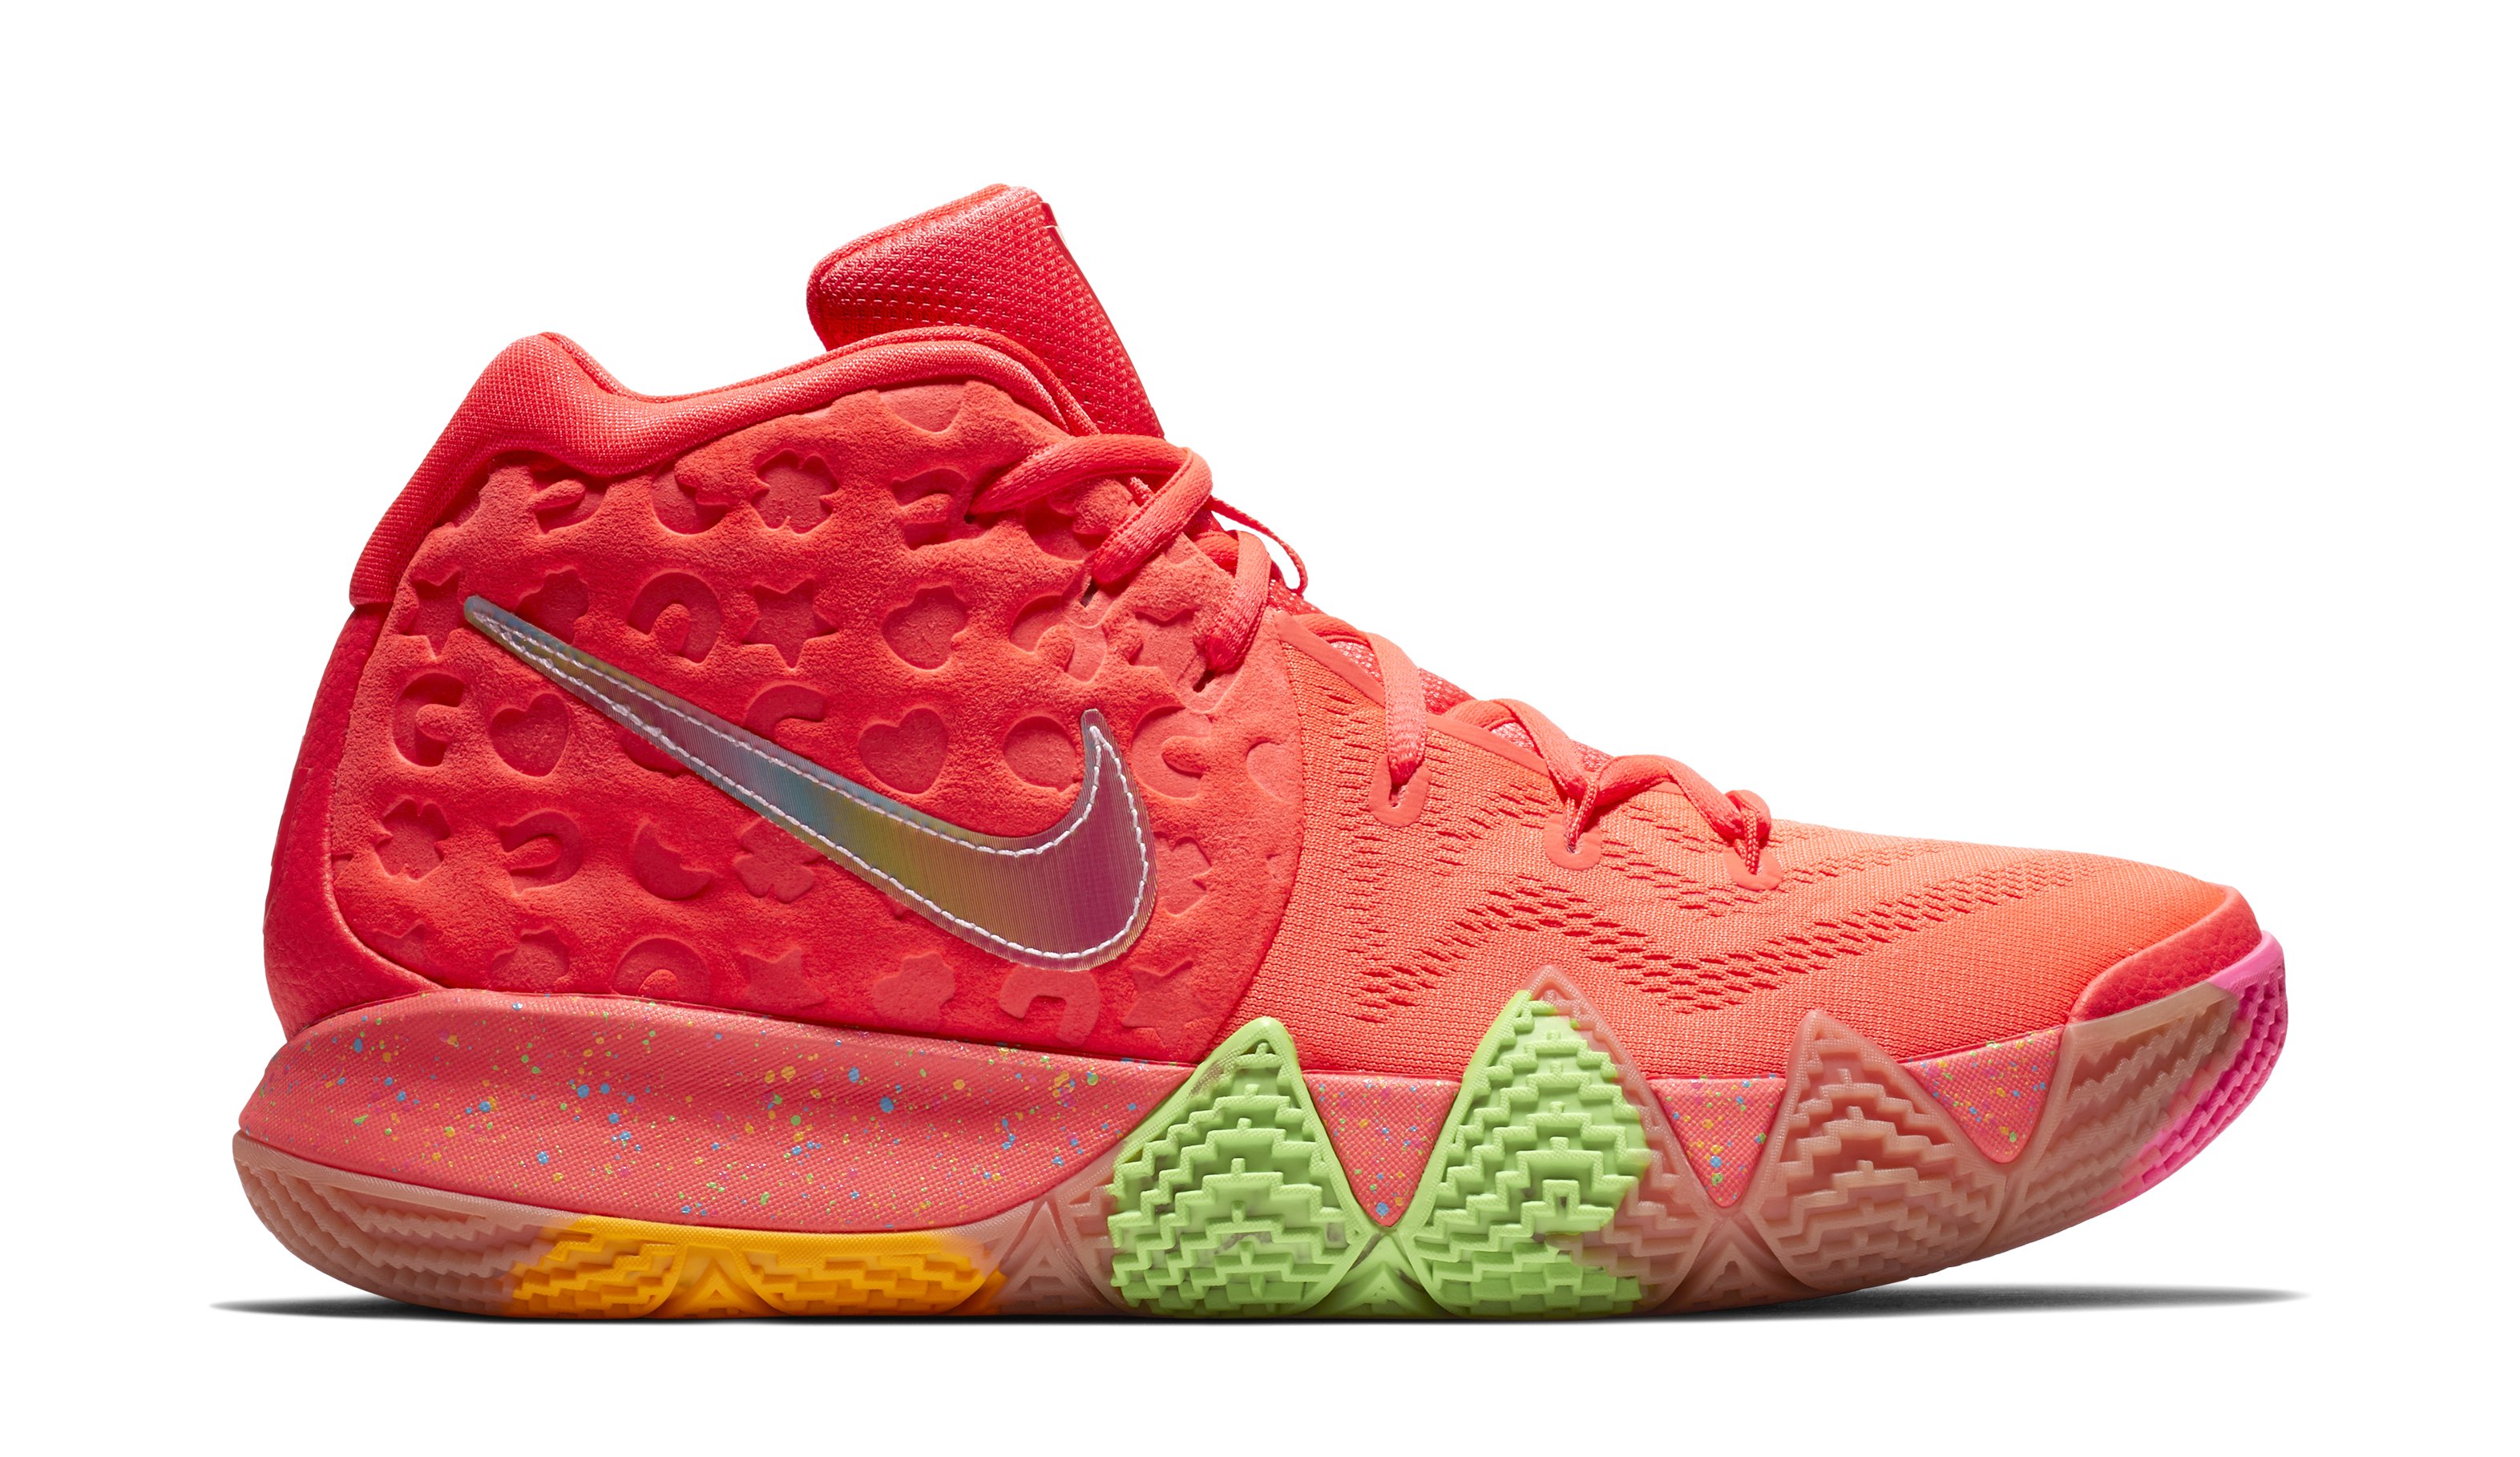 check out 9fe75 85485 Nike Kyrie 4 'Cereal Pack' House of Hoops Early Release Date ...